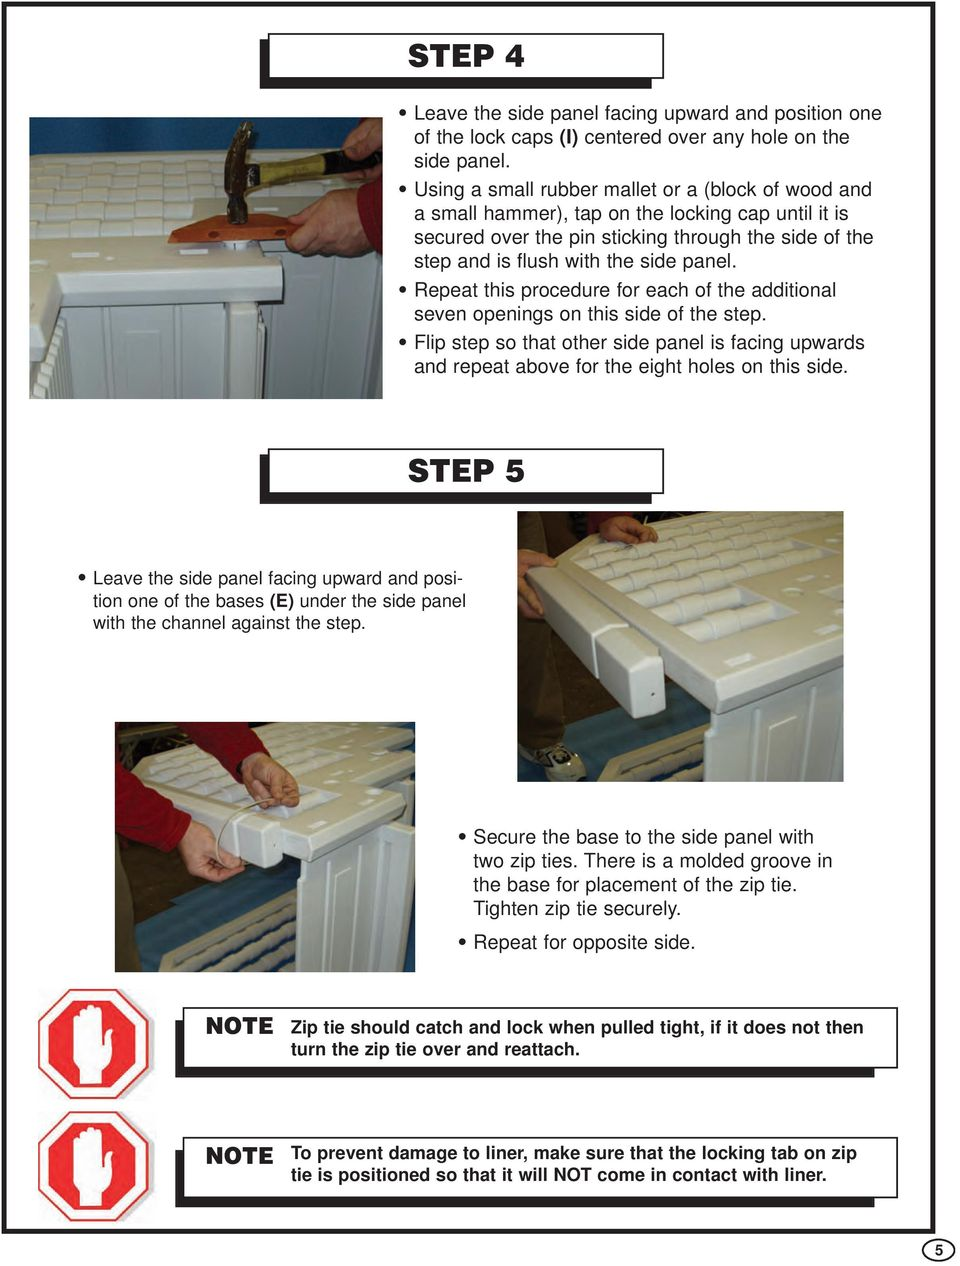 Repeat this procedure for each of the additional seven openings on this side of the step. Flip step so that other side panel is facing upwards and repeat above for the eight holes on this side.